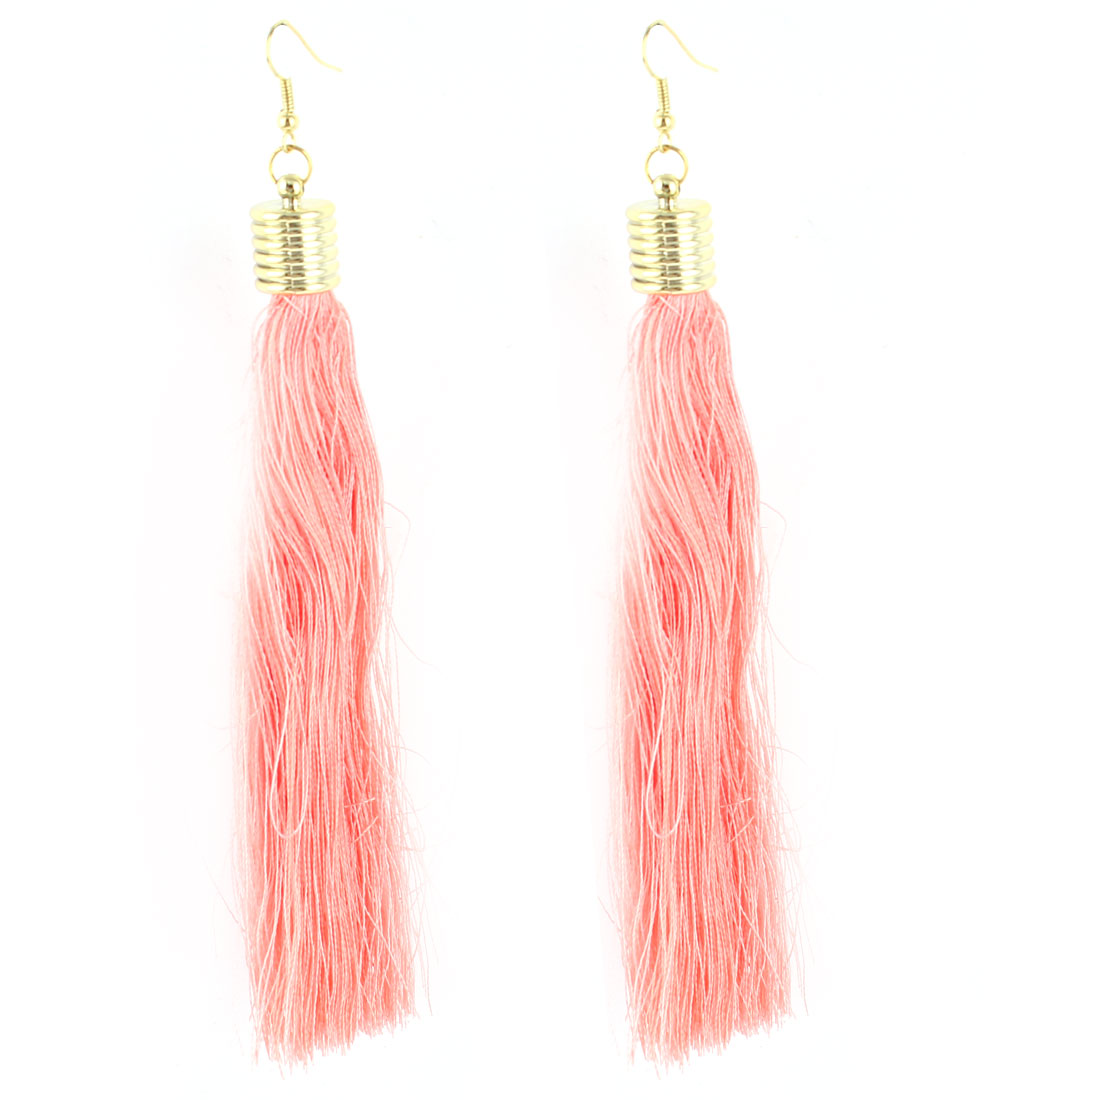 Lady Ear Decoration Nylon Tassels Pendant Fish Hook Earrings Pink Pair